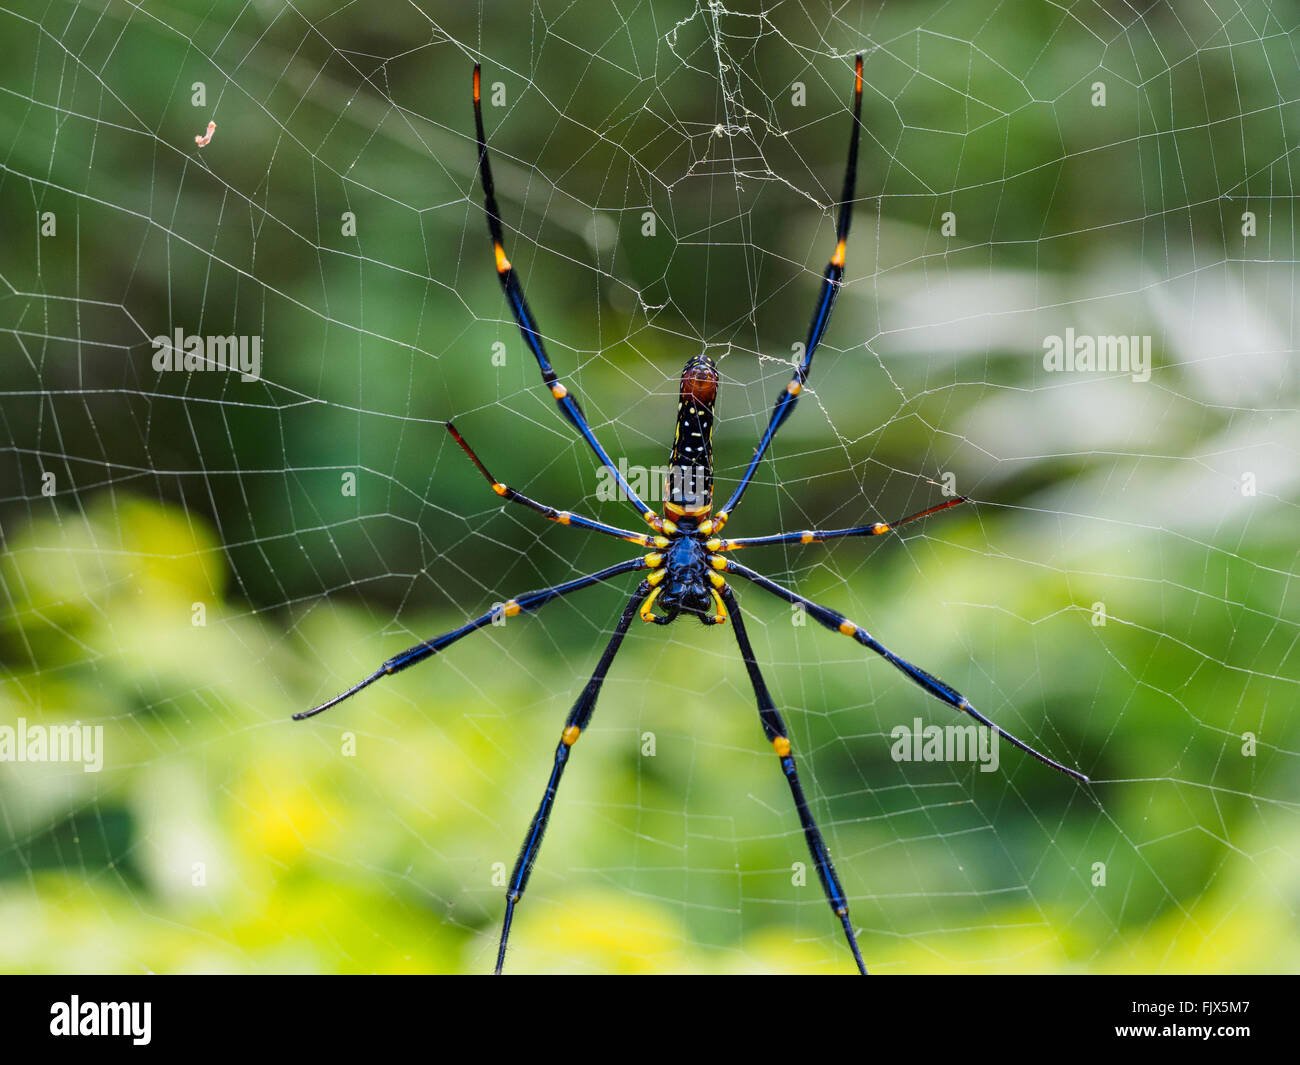 Close-Up Of Spider On Web - Stock Image